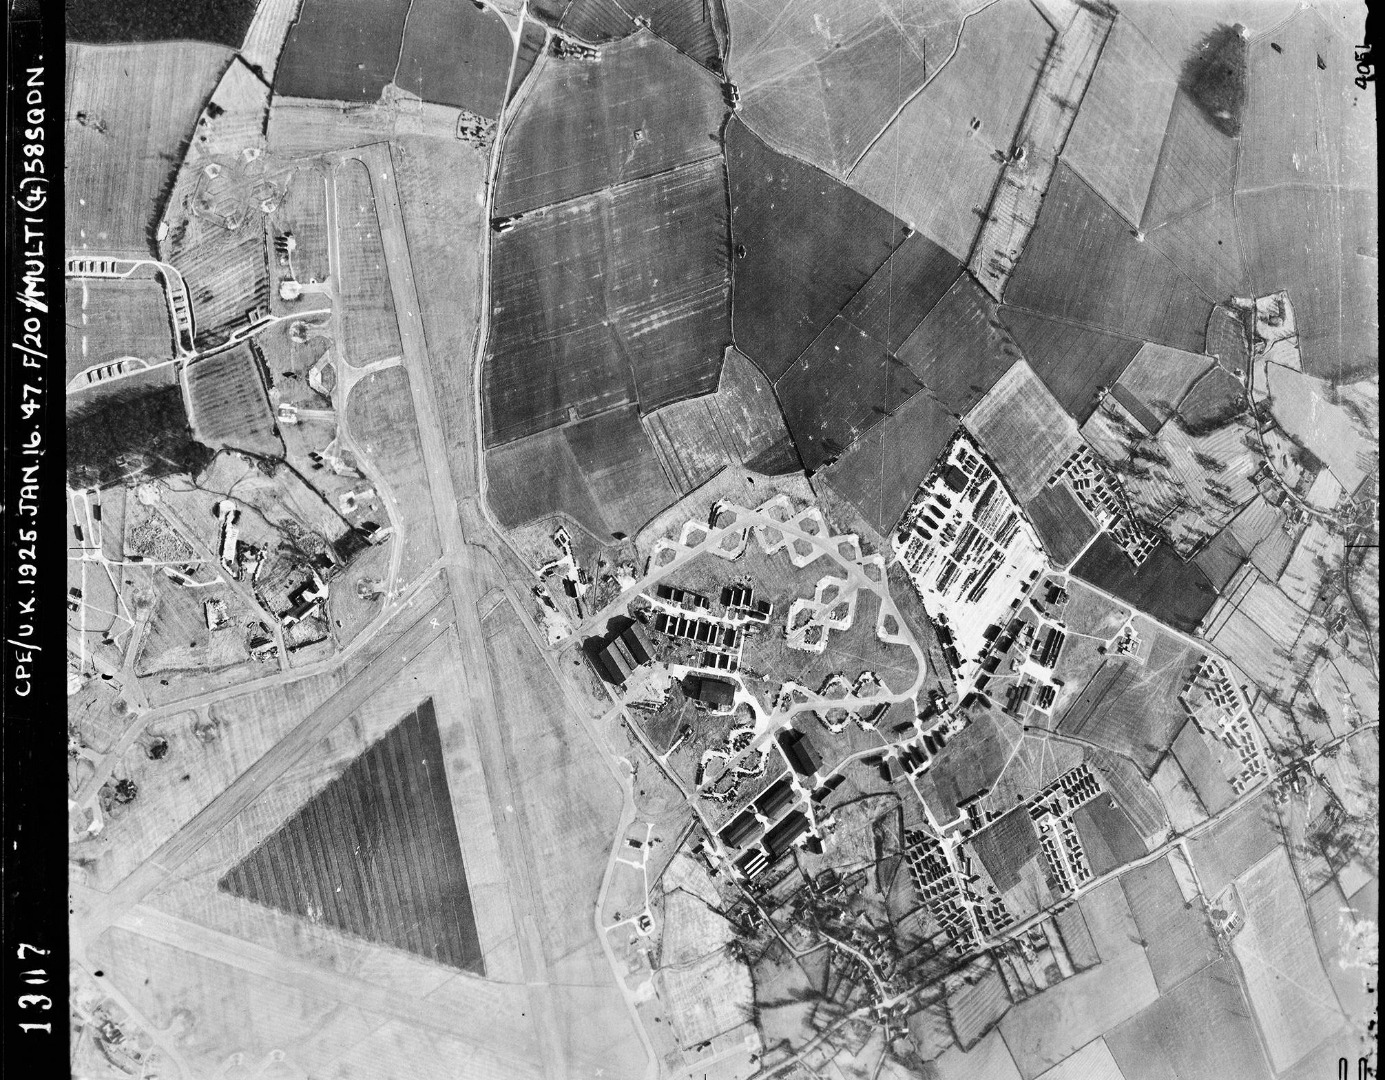 008Alconbury_Airfield_-_1947.jpg